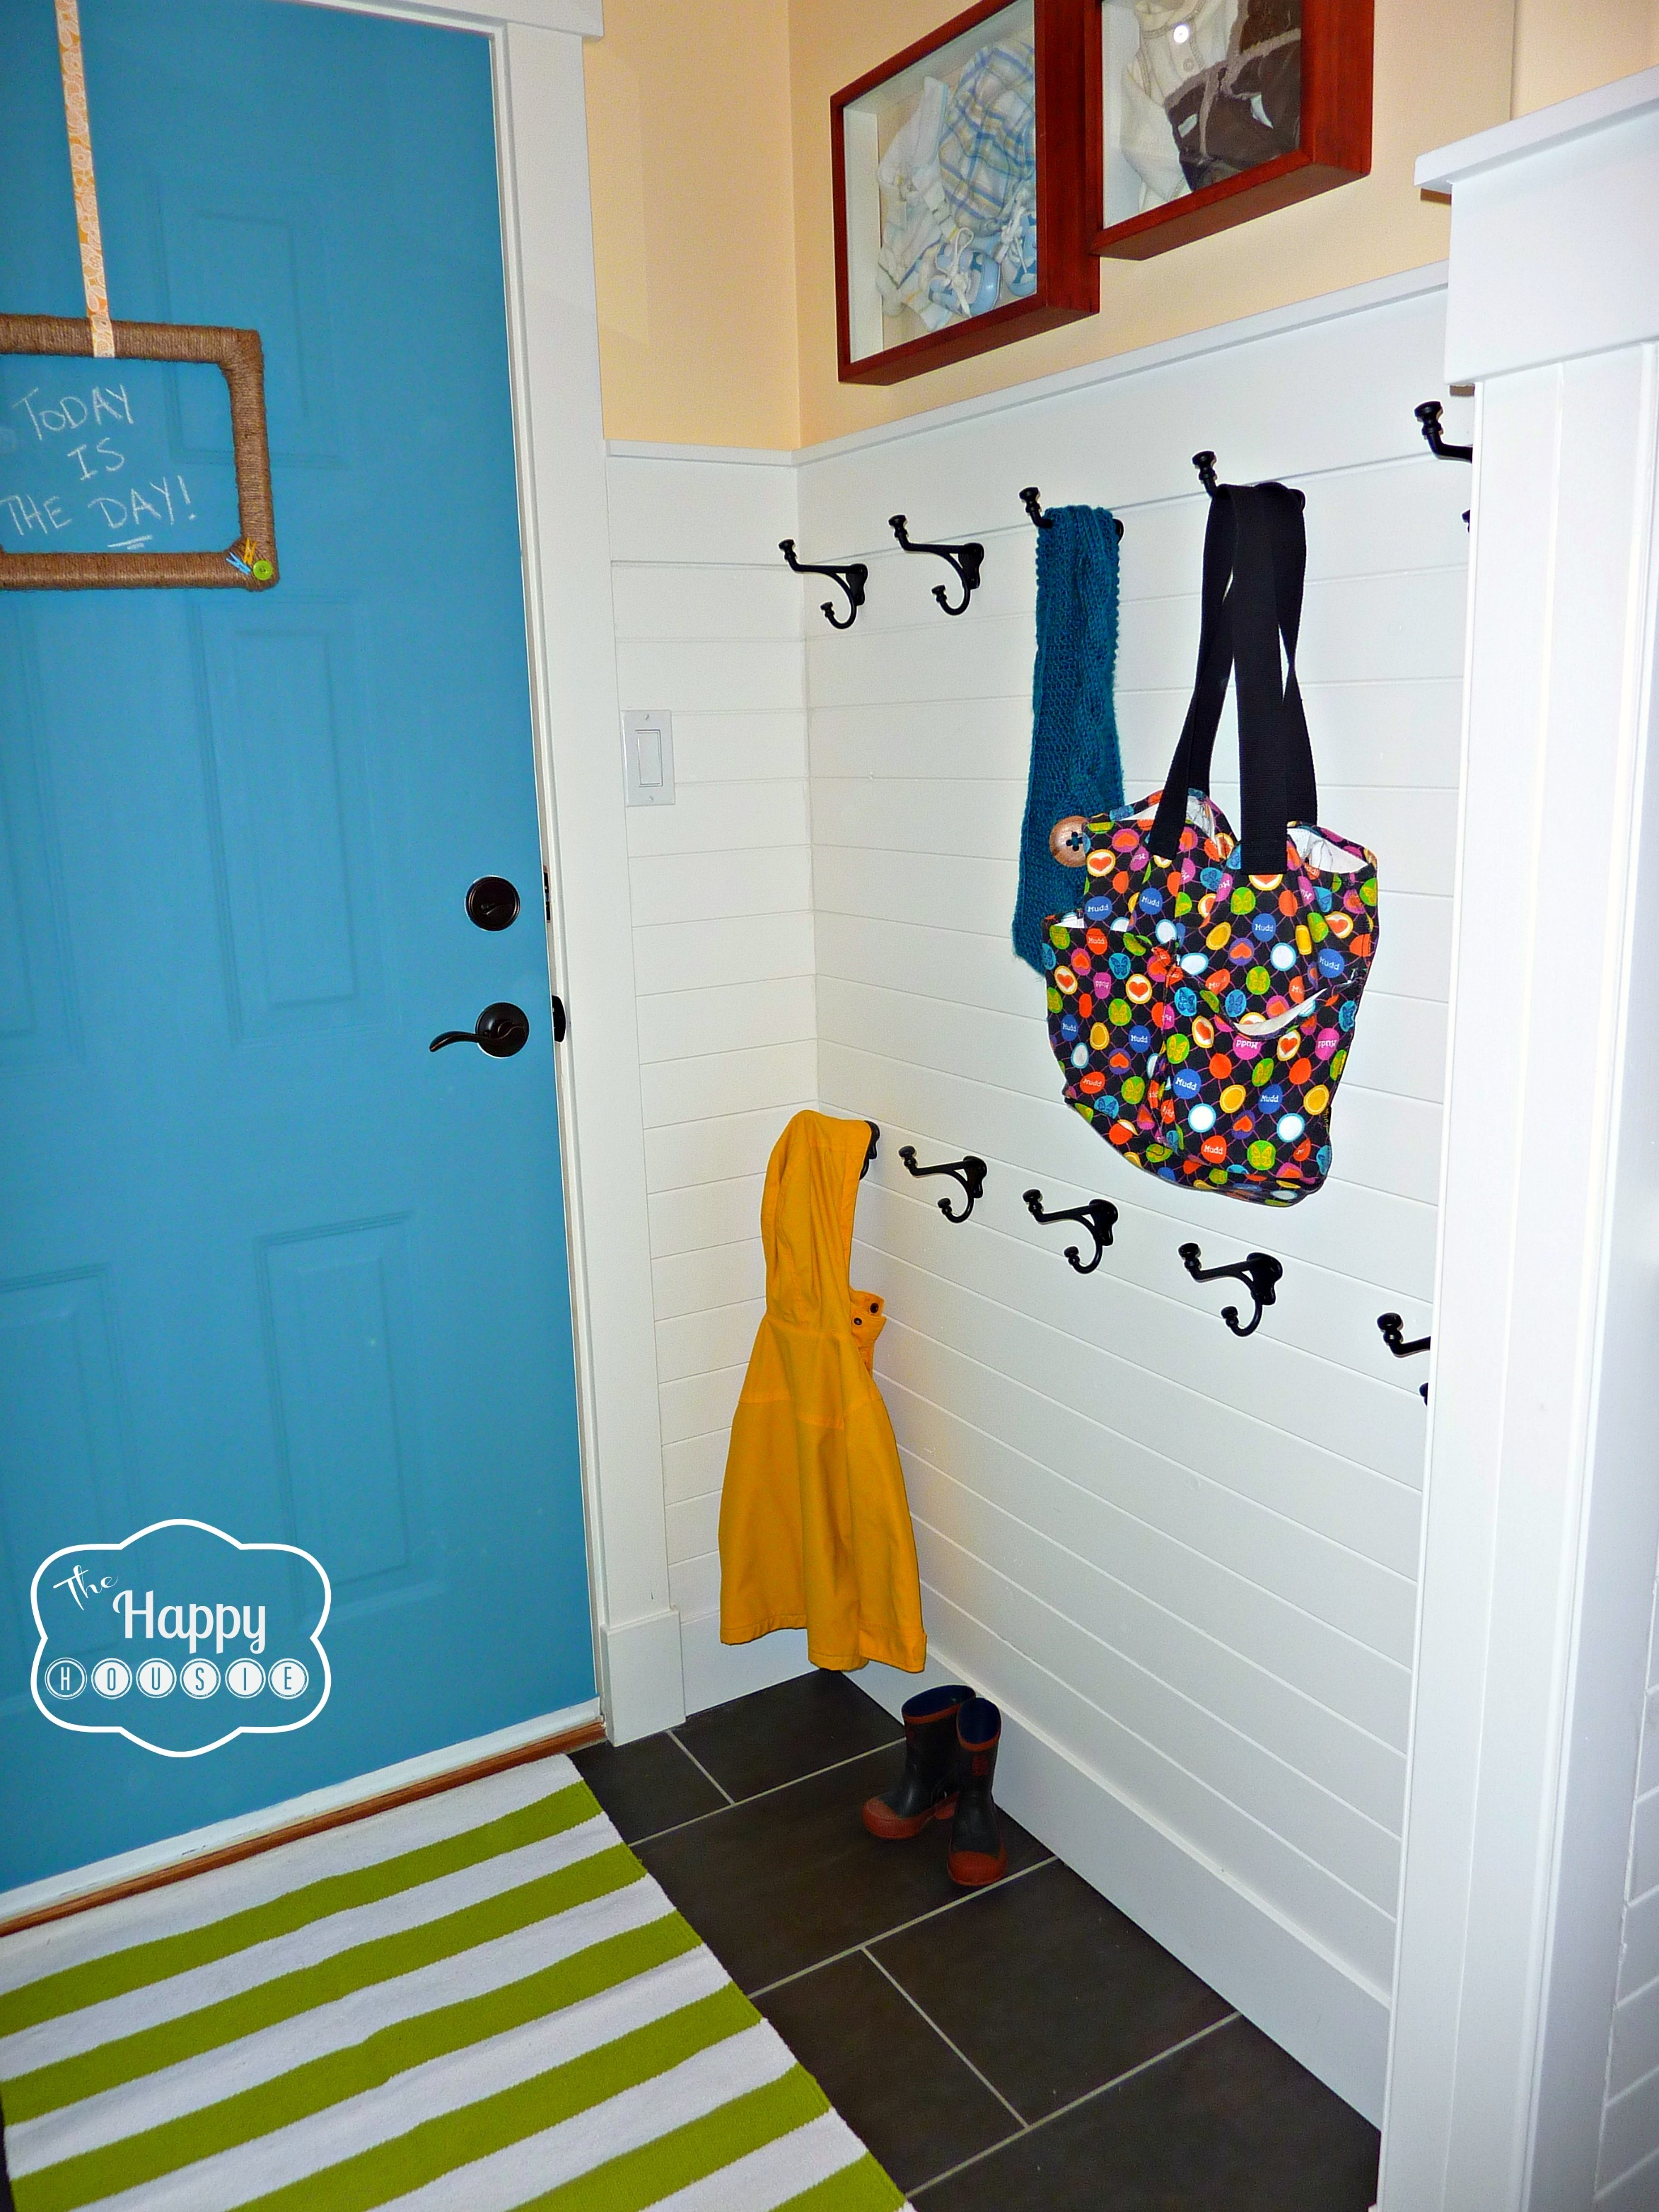 Diy Hang It Up!: A Hook Hanging How To | The Happy Housie Inside Wall Art Coat Hooks (View 15 of 20)